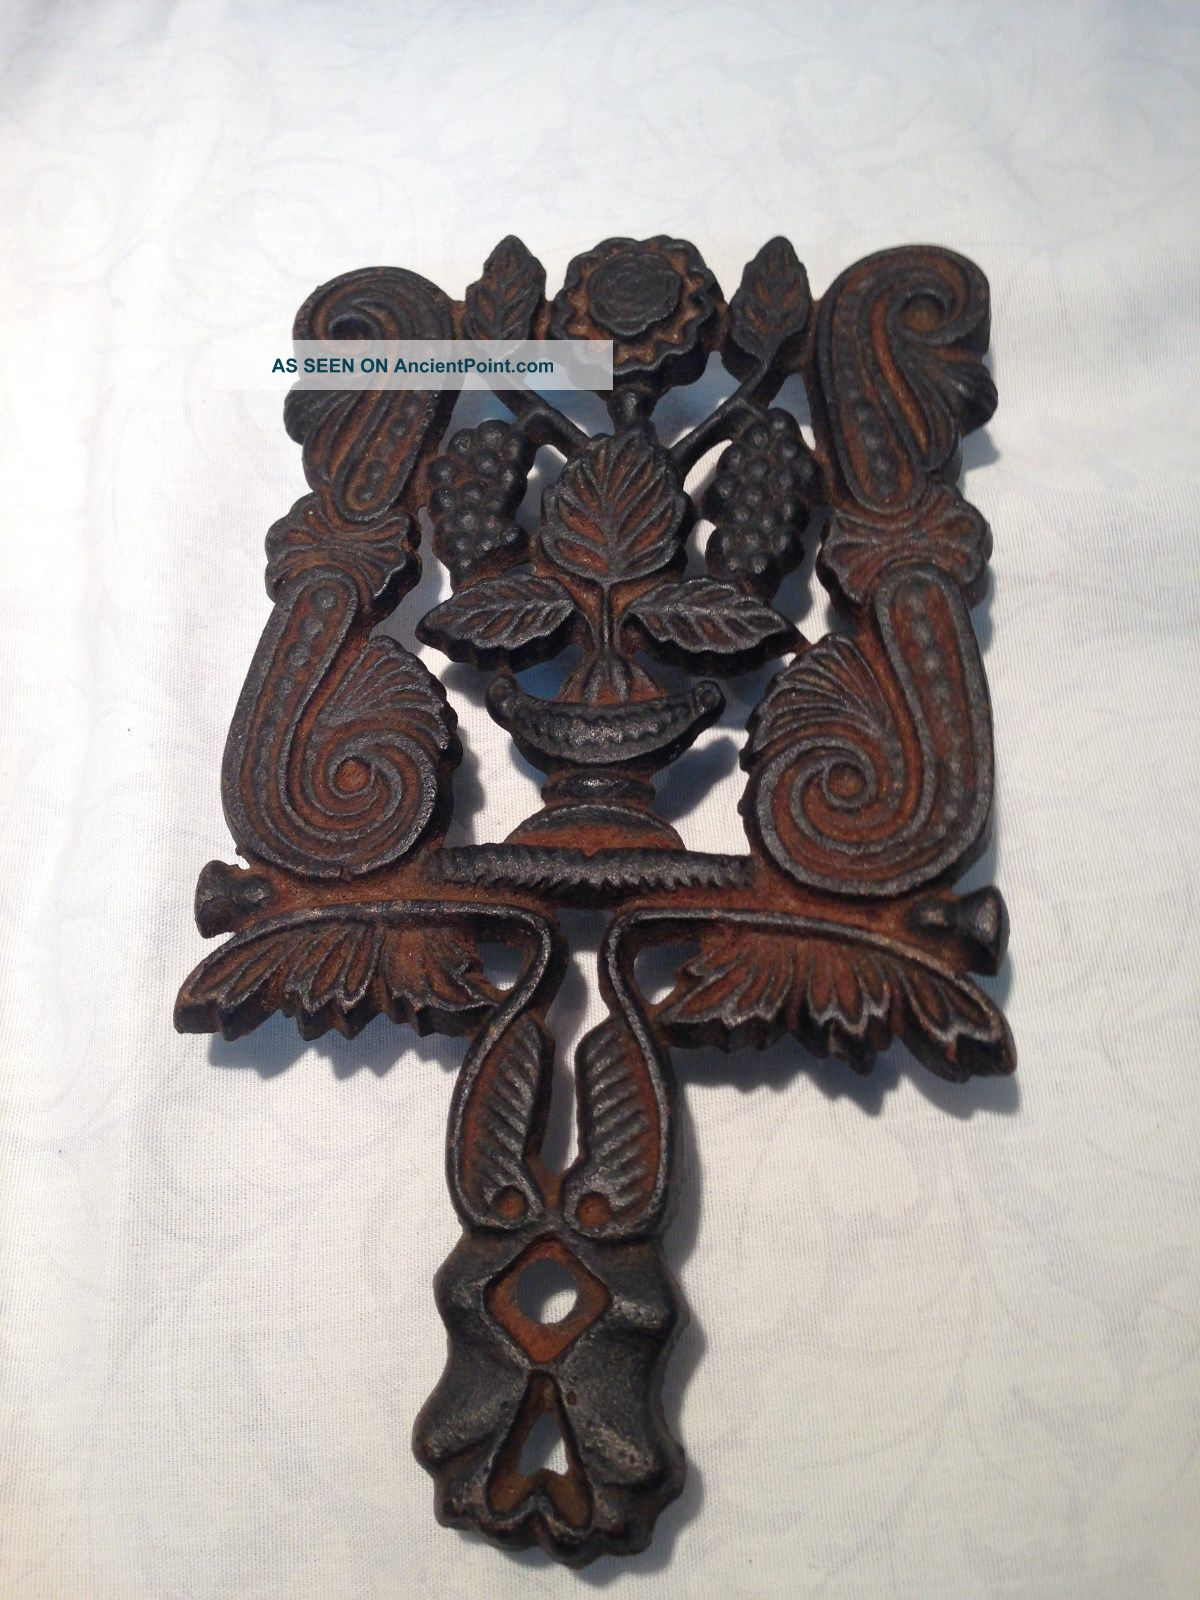 Cast Iron Footed Trivet With Grapes And Leaf Design Trivets photo